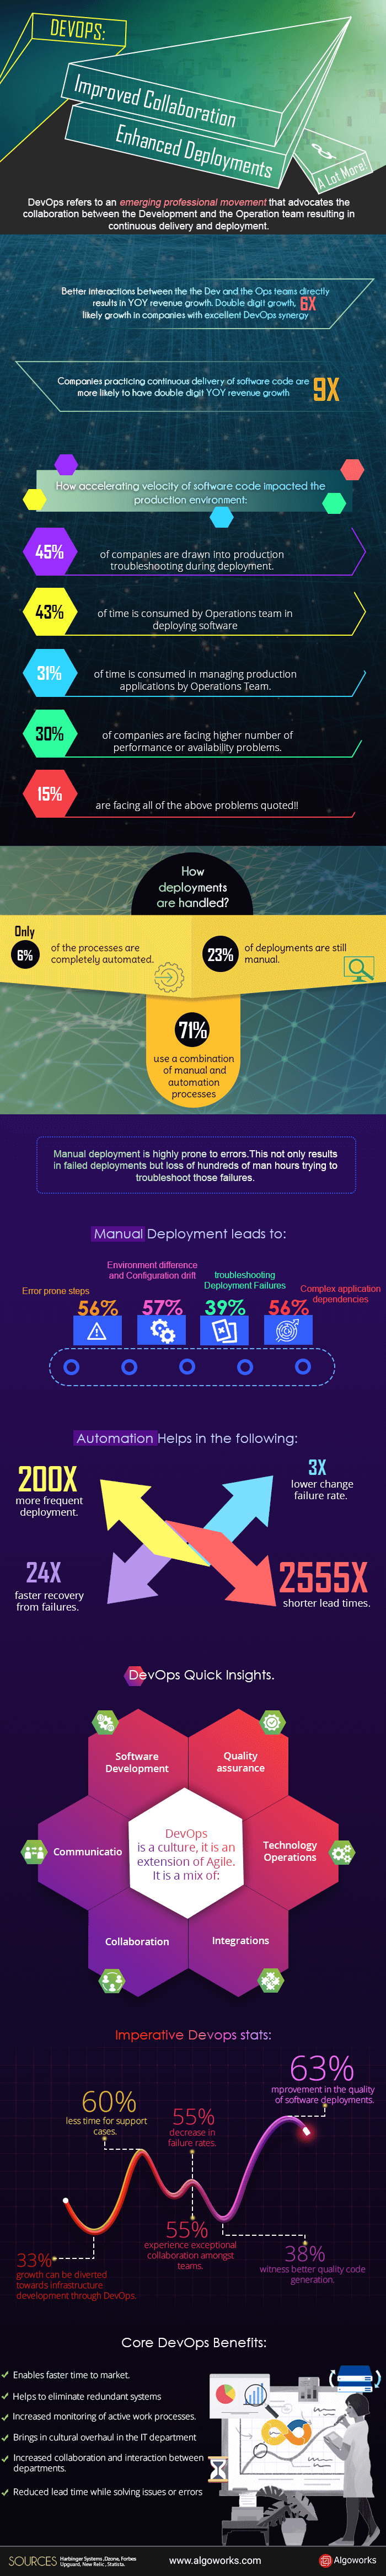 DevOps: Improved Collaboration, Enhanced Deployments & A Lot More | An Infographic